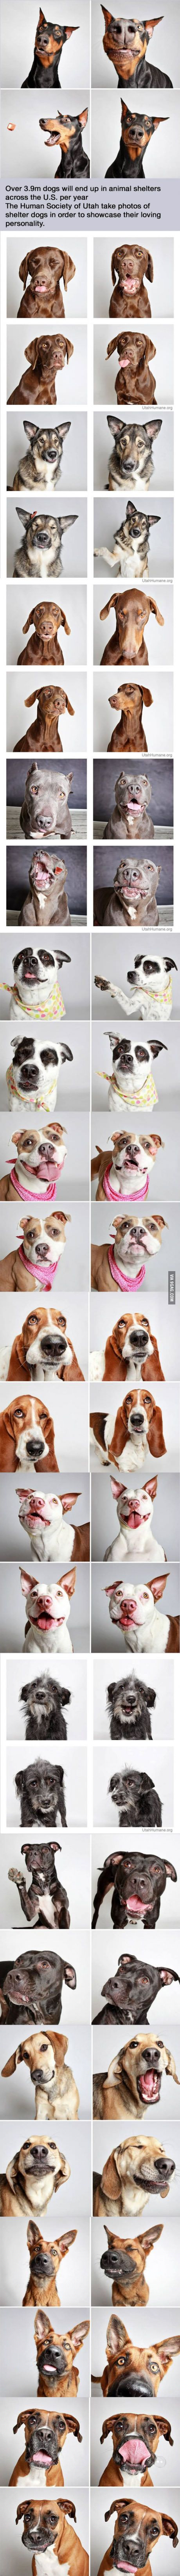 Shelter puts rescue dogs in photo booth to get them adopted